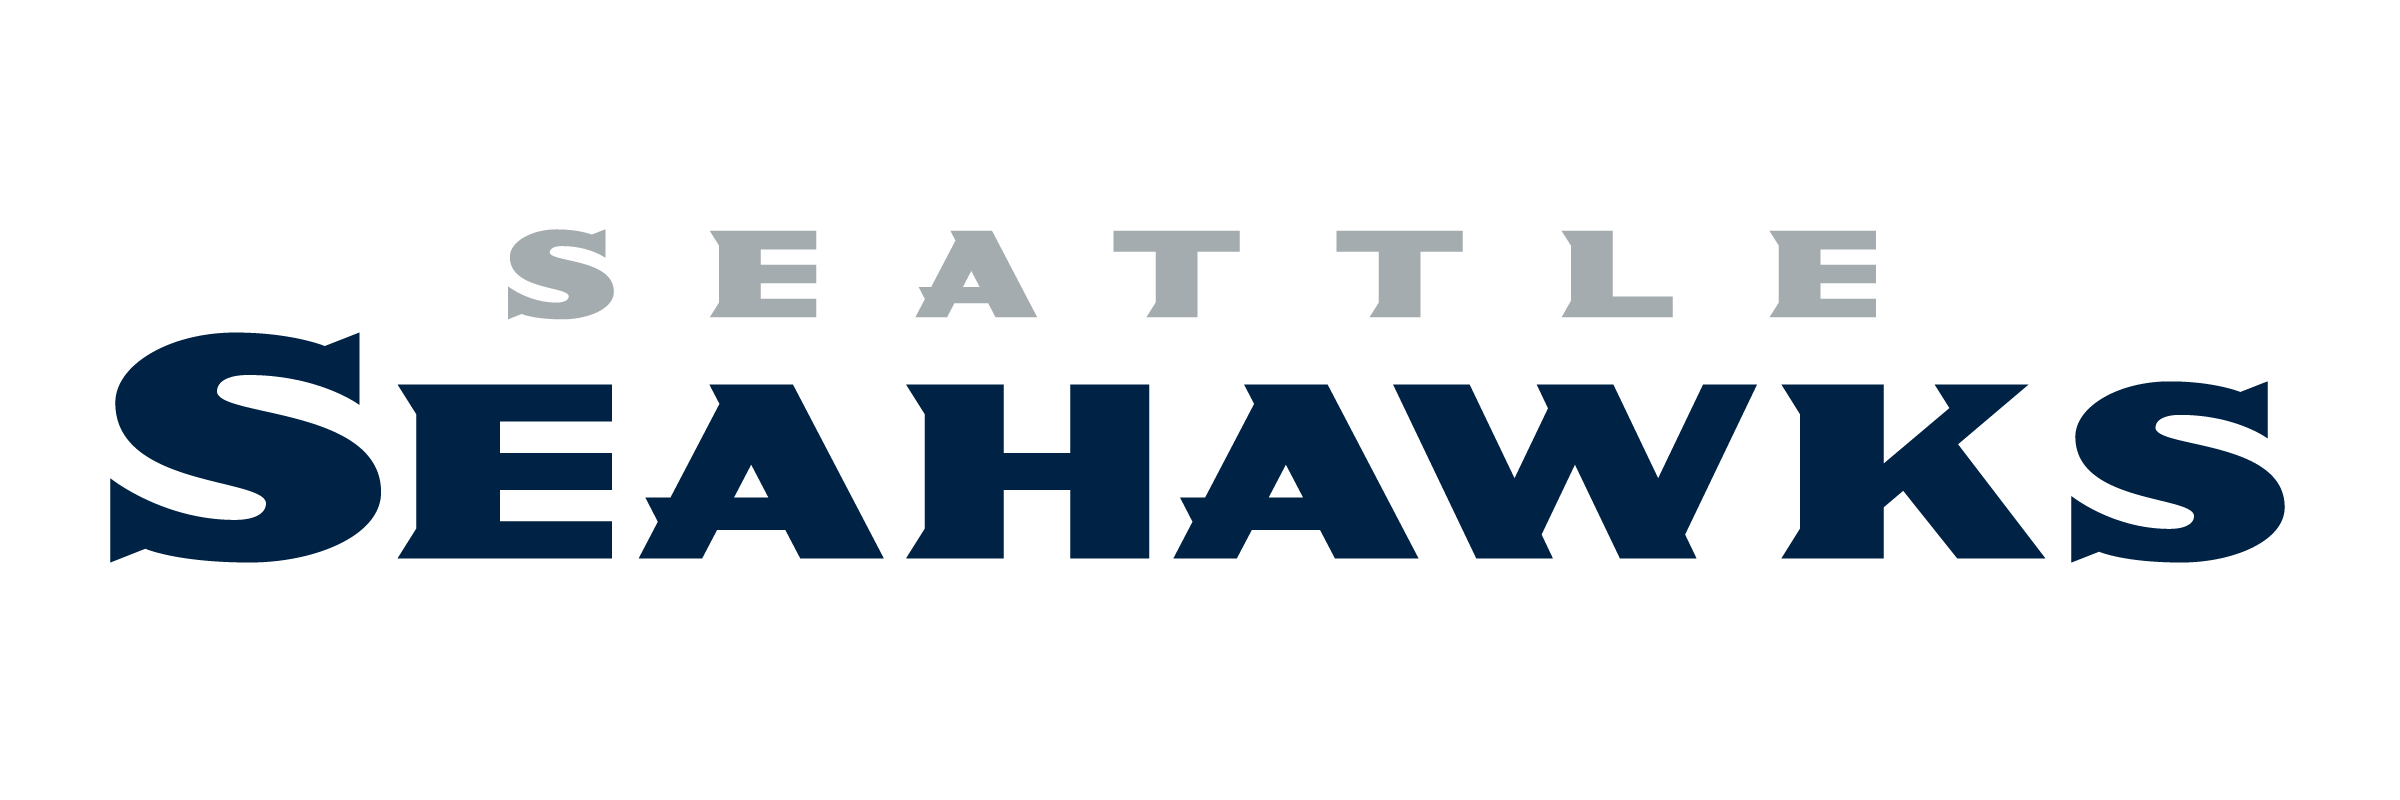 Seattle Seahawks Logo PNG Transparent & SVG Vector.